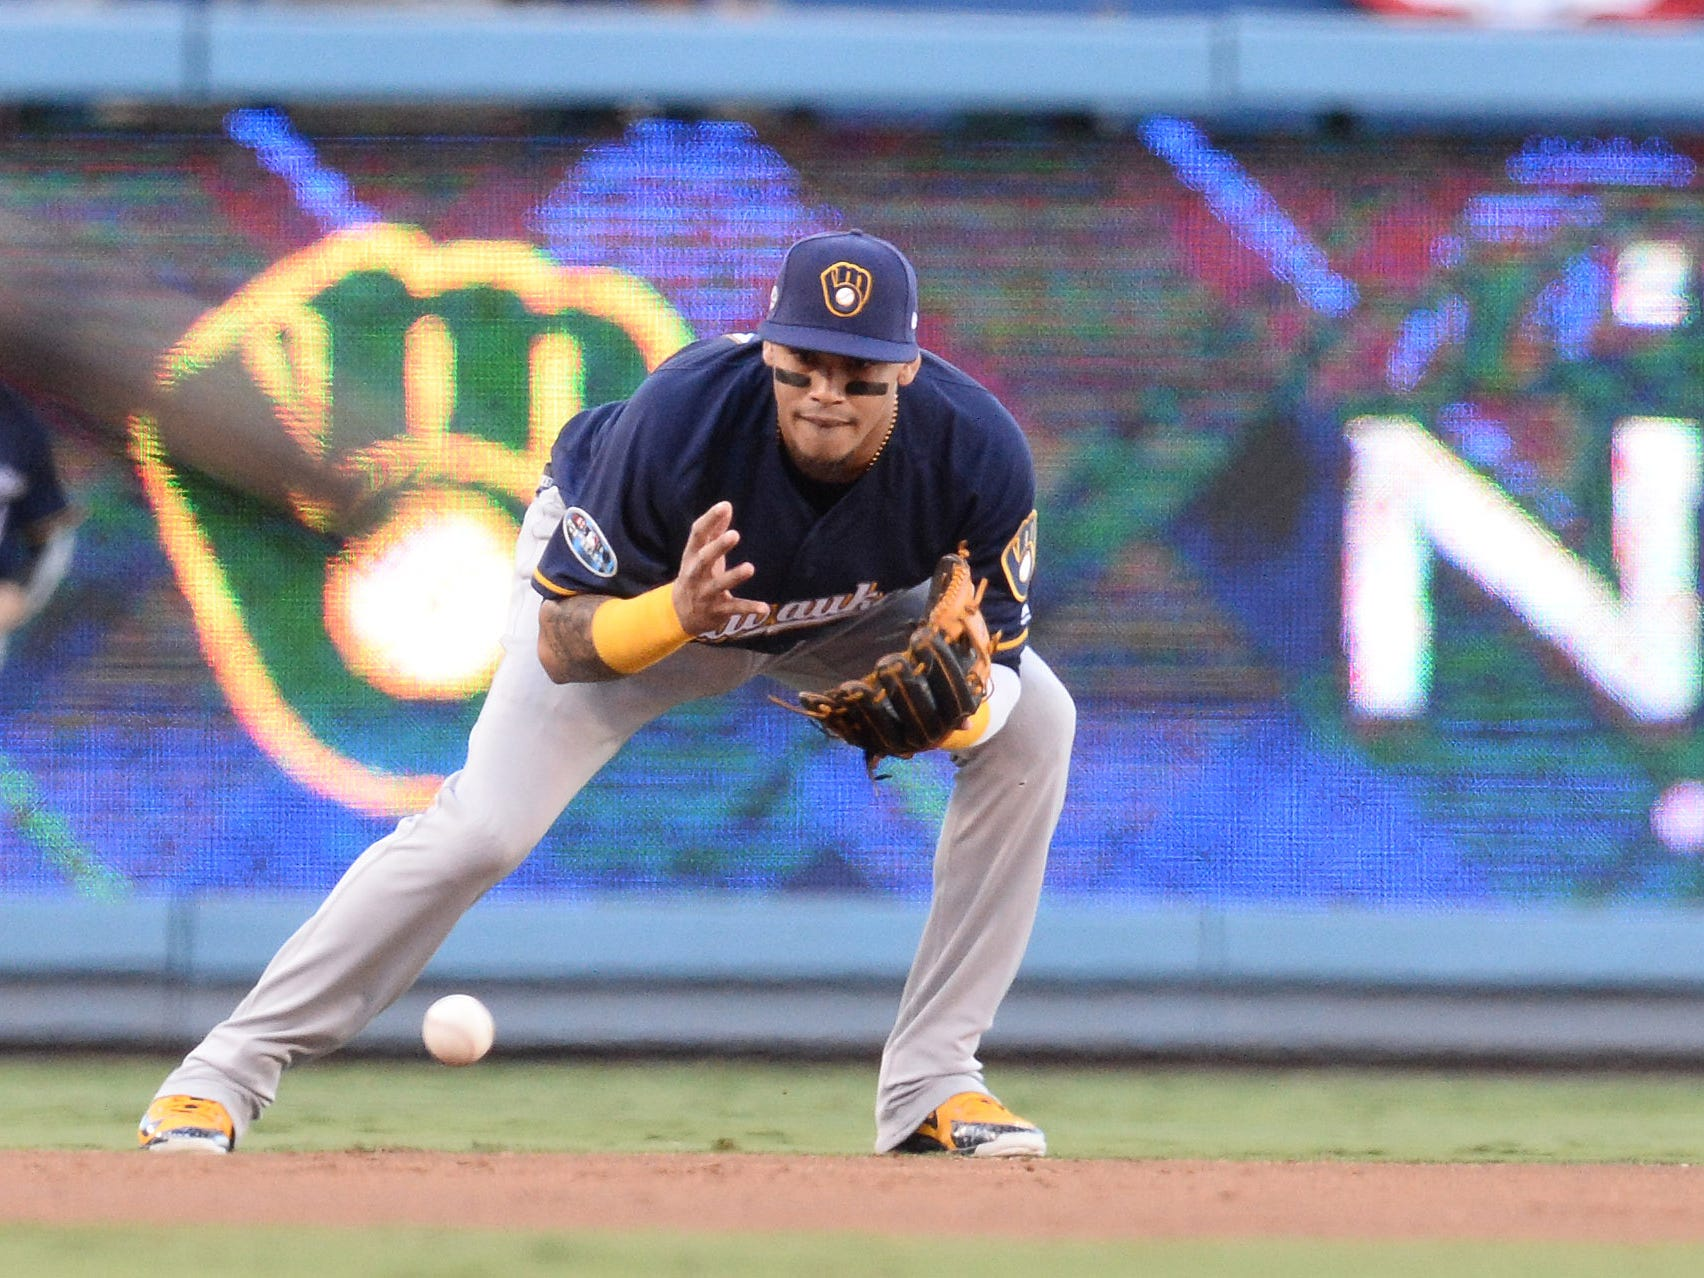 NLDS Game 3: Brewers shortstop Orlando Arcia fields a ball in the first inning.